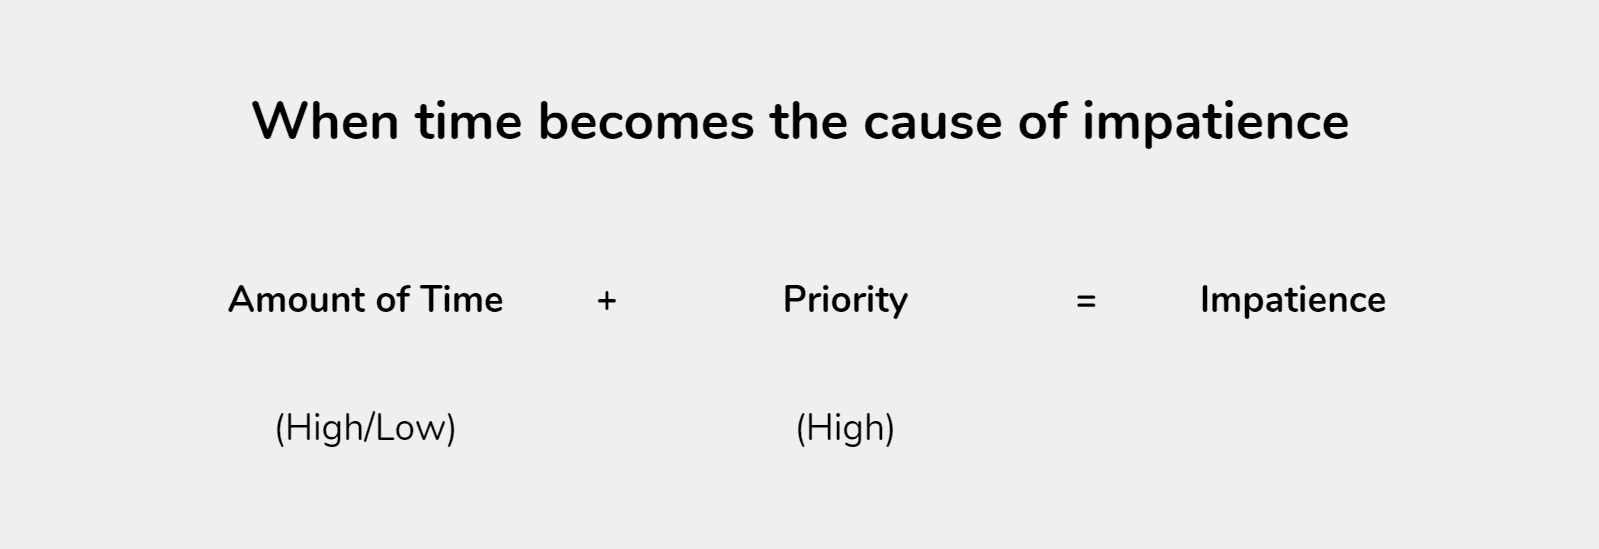 Role of time and task priority to cause impatience